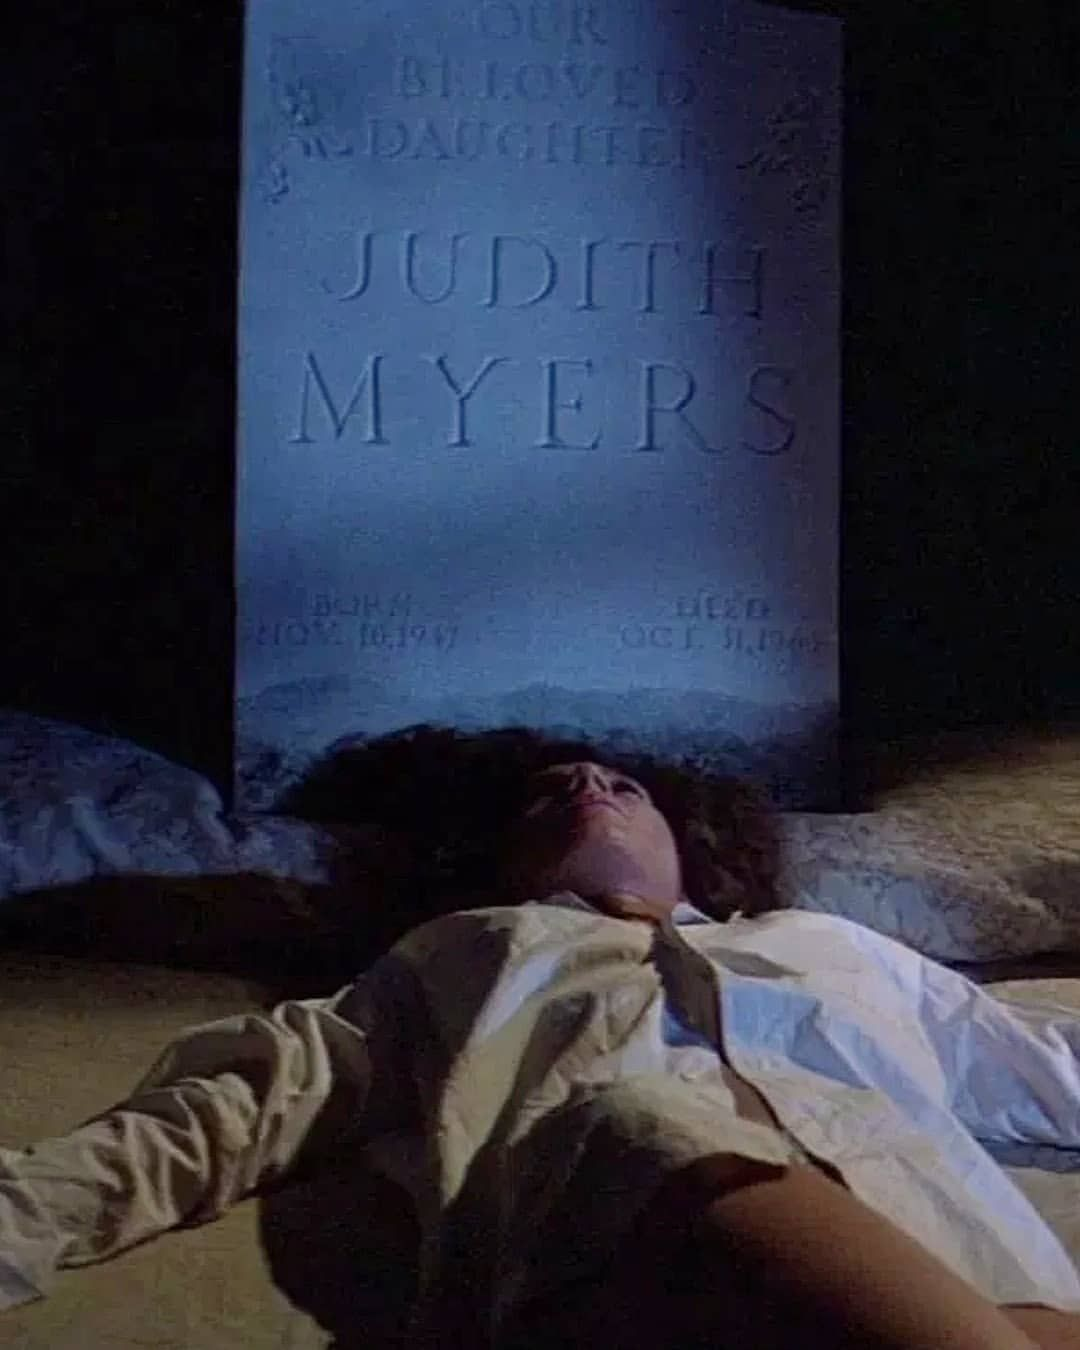 Who Played Judith Myers In Halloween 2020 Judith Myers 🎃 | Michael myers, Myer, John carpenter